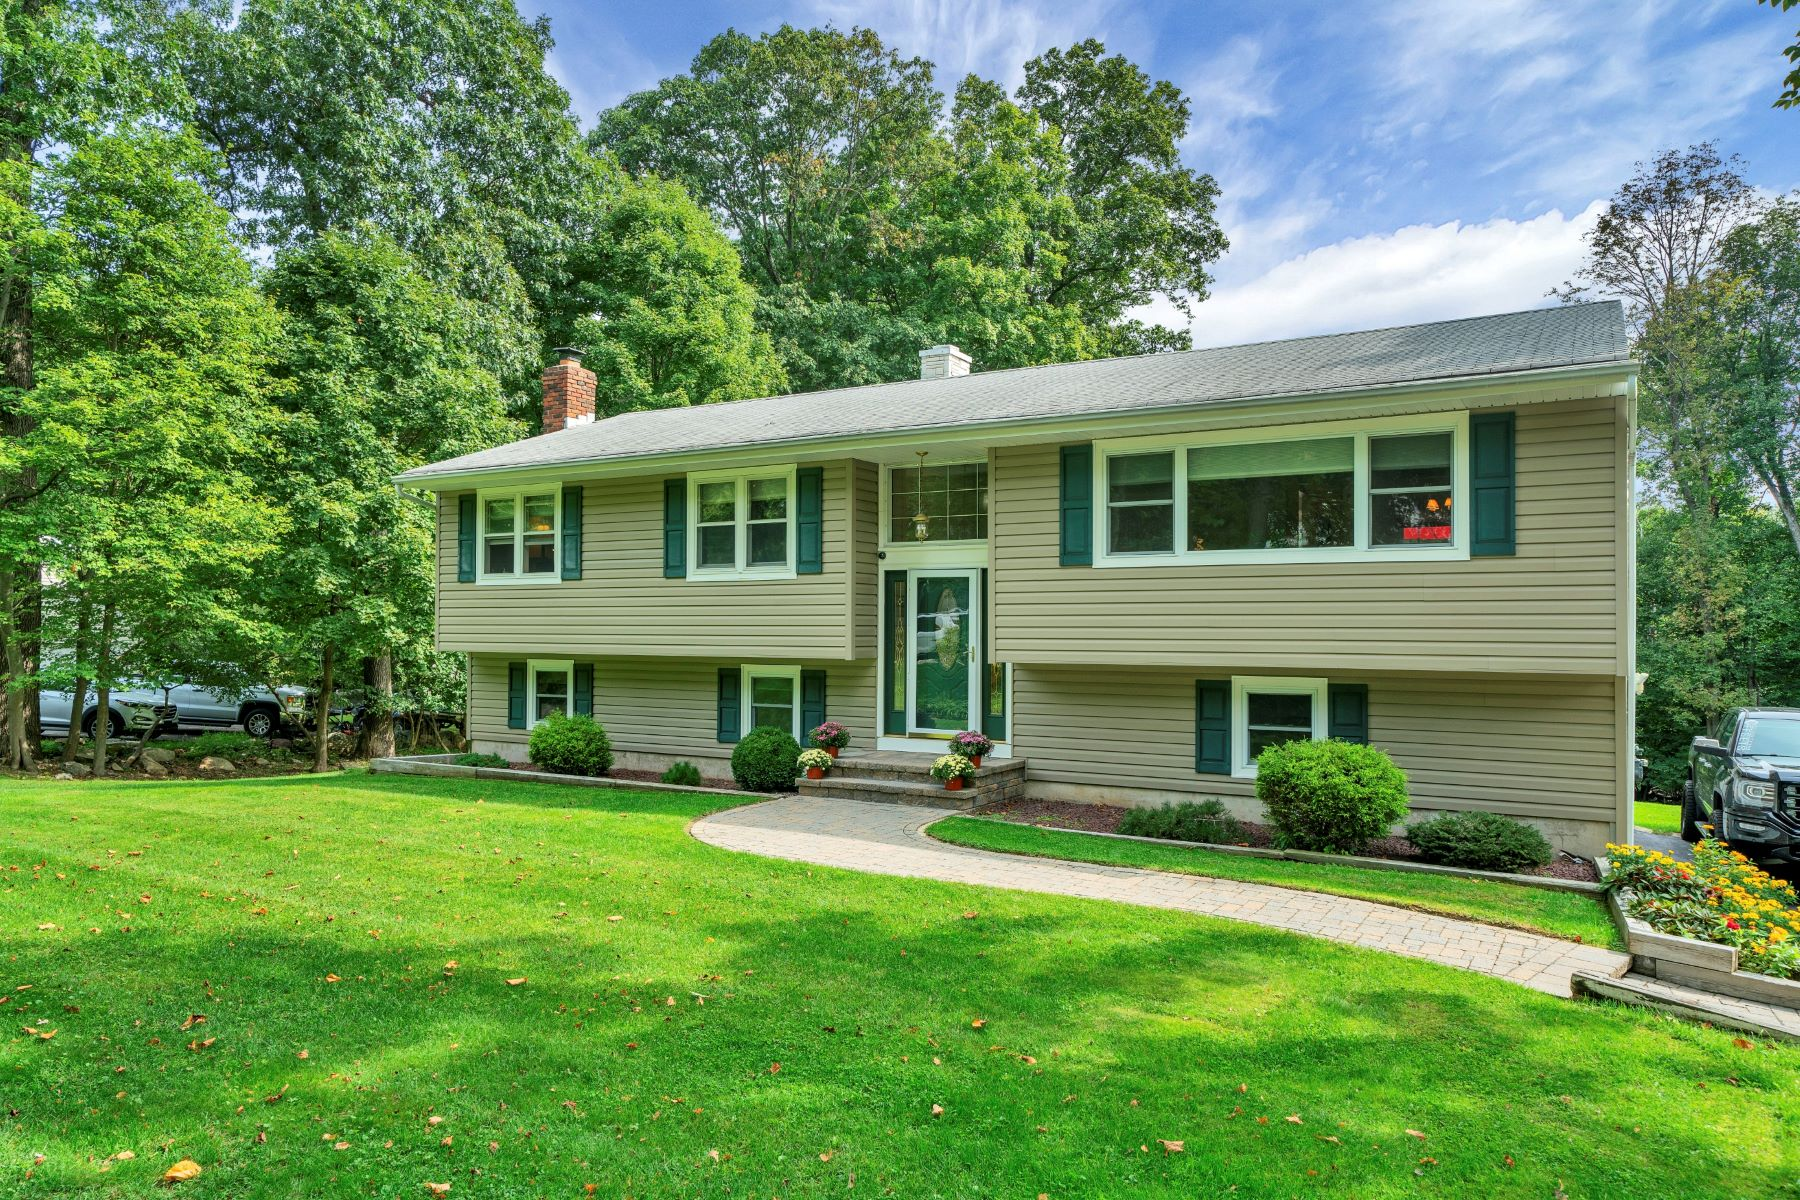 Single Family Homes for Active at Wonderful Neighborhood Setting 14 Crest Drive Long Valley, New Jersey 07853 United States